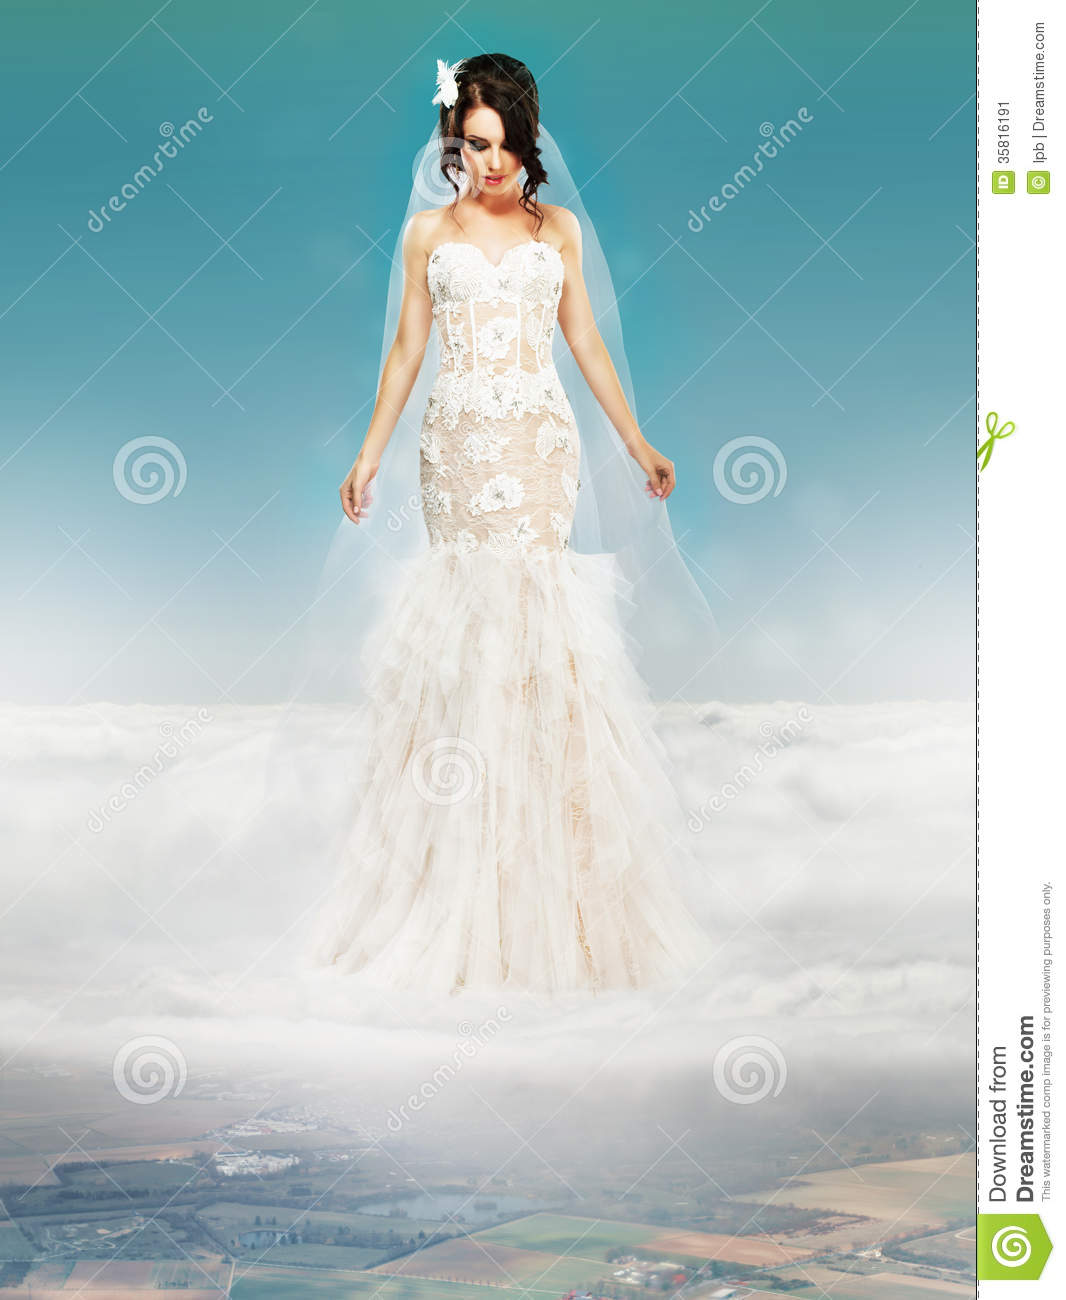 Bride In Wedding White Dress Standing On A Cloud Stock Image - Image ...